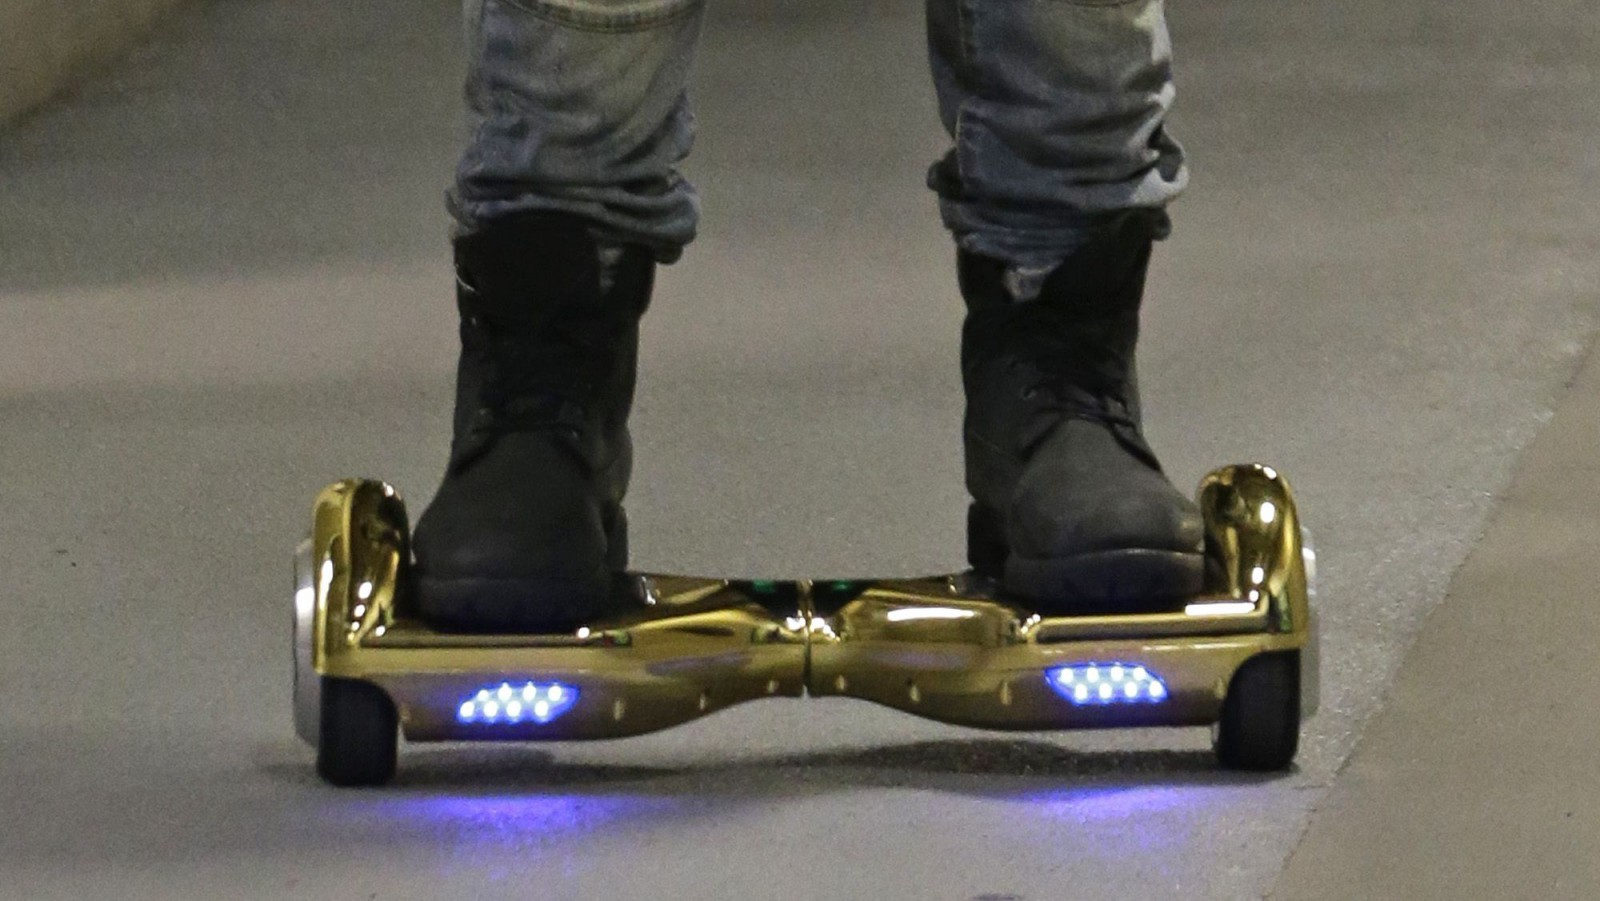 """Seattle Seahawks wide receiver B.J. Daniels rides through a hallway at CenturyLink Field on an electric self-balancing scooter commonly called a """"hoverboard,"""" as he arrives for an NFL football game against the Detroit Lions, Monday, Oct. 5, 2015, in Seattle. (AP Photo/Elaine Thompson)"""